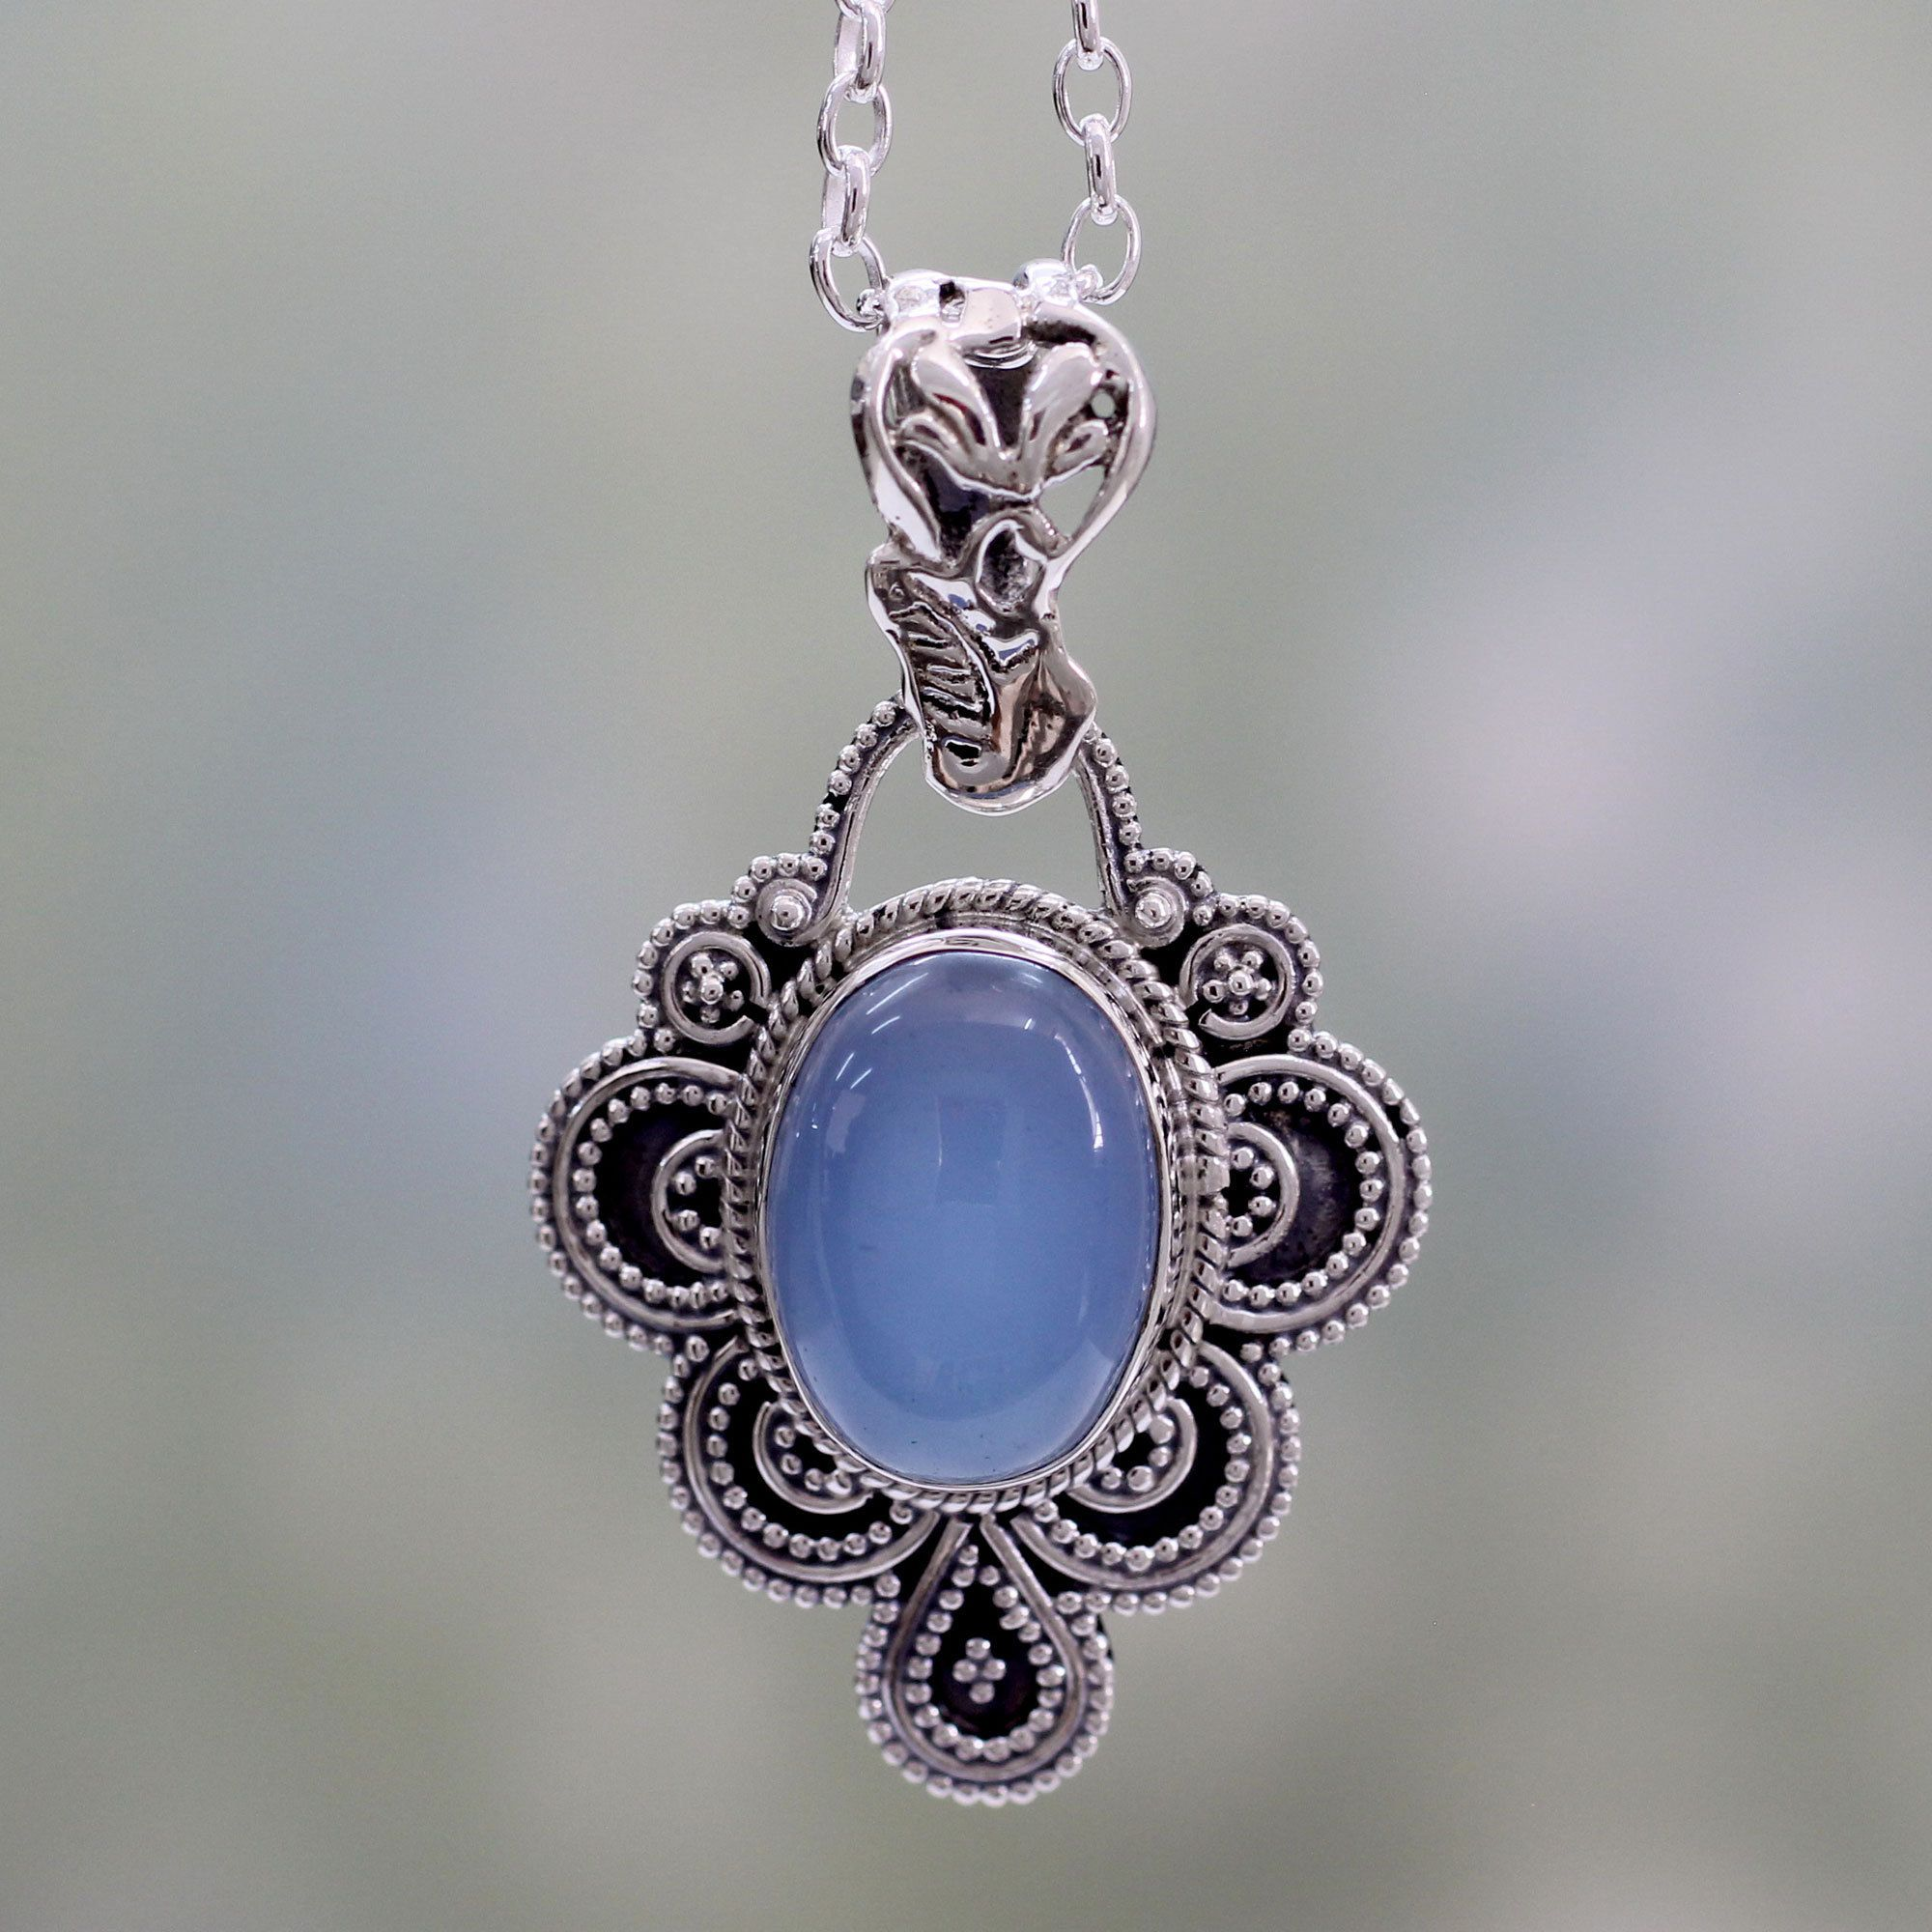 uk blue product unicef chalcedony necklace modern and topaz with profit romance silver pendant artisans sterling market win